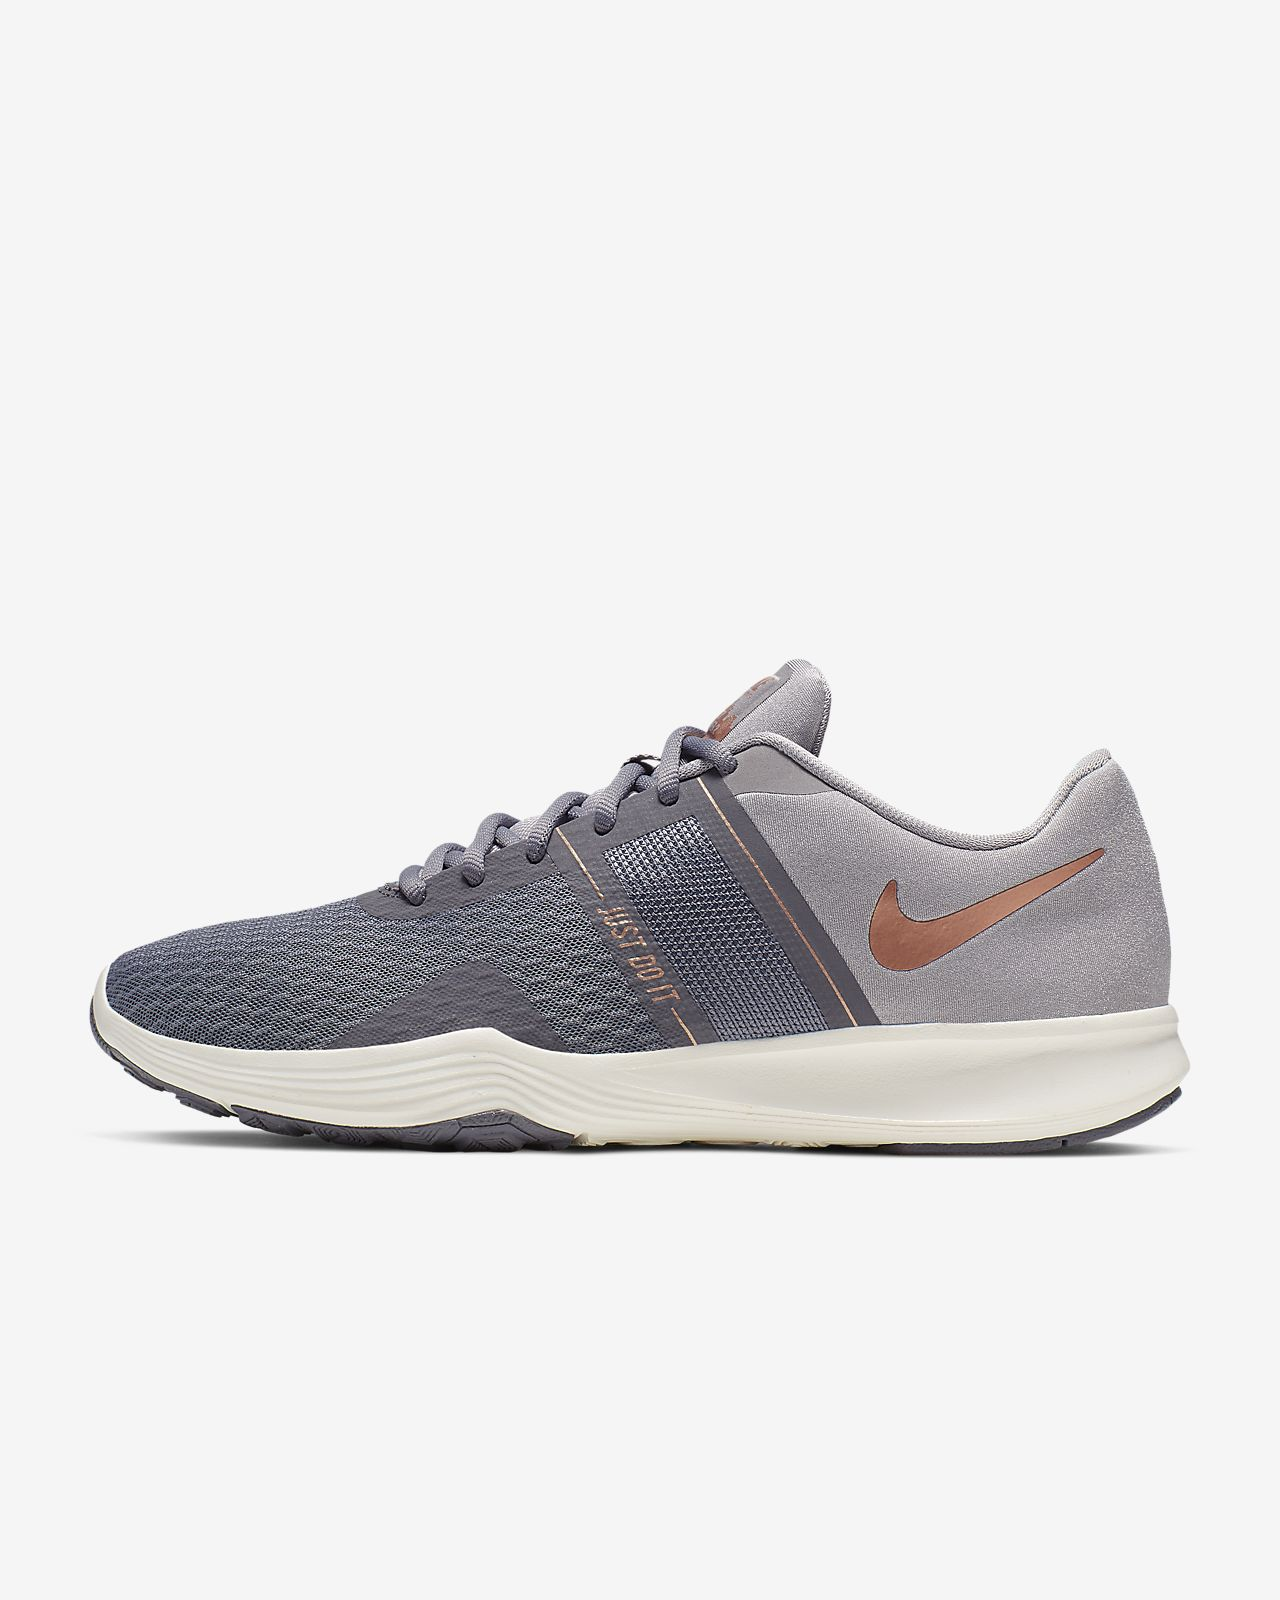 City Training Trainer 2 Nike Women's Shoe rhQtsdC